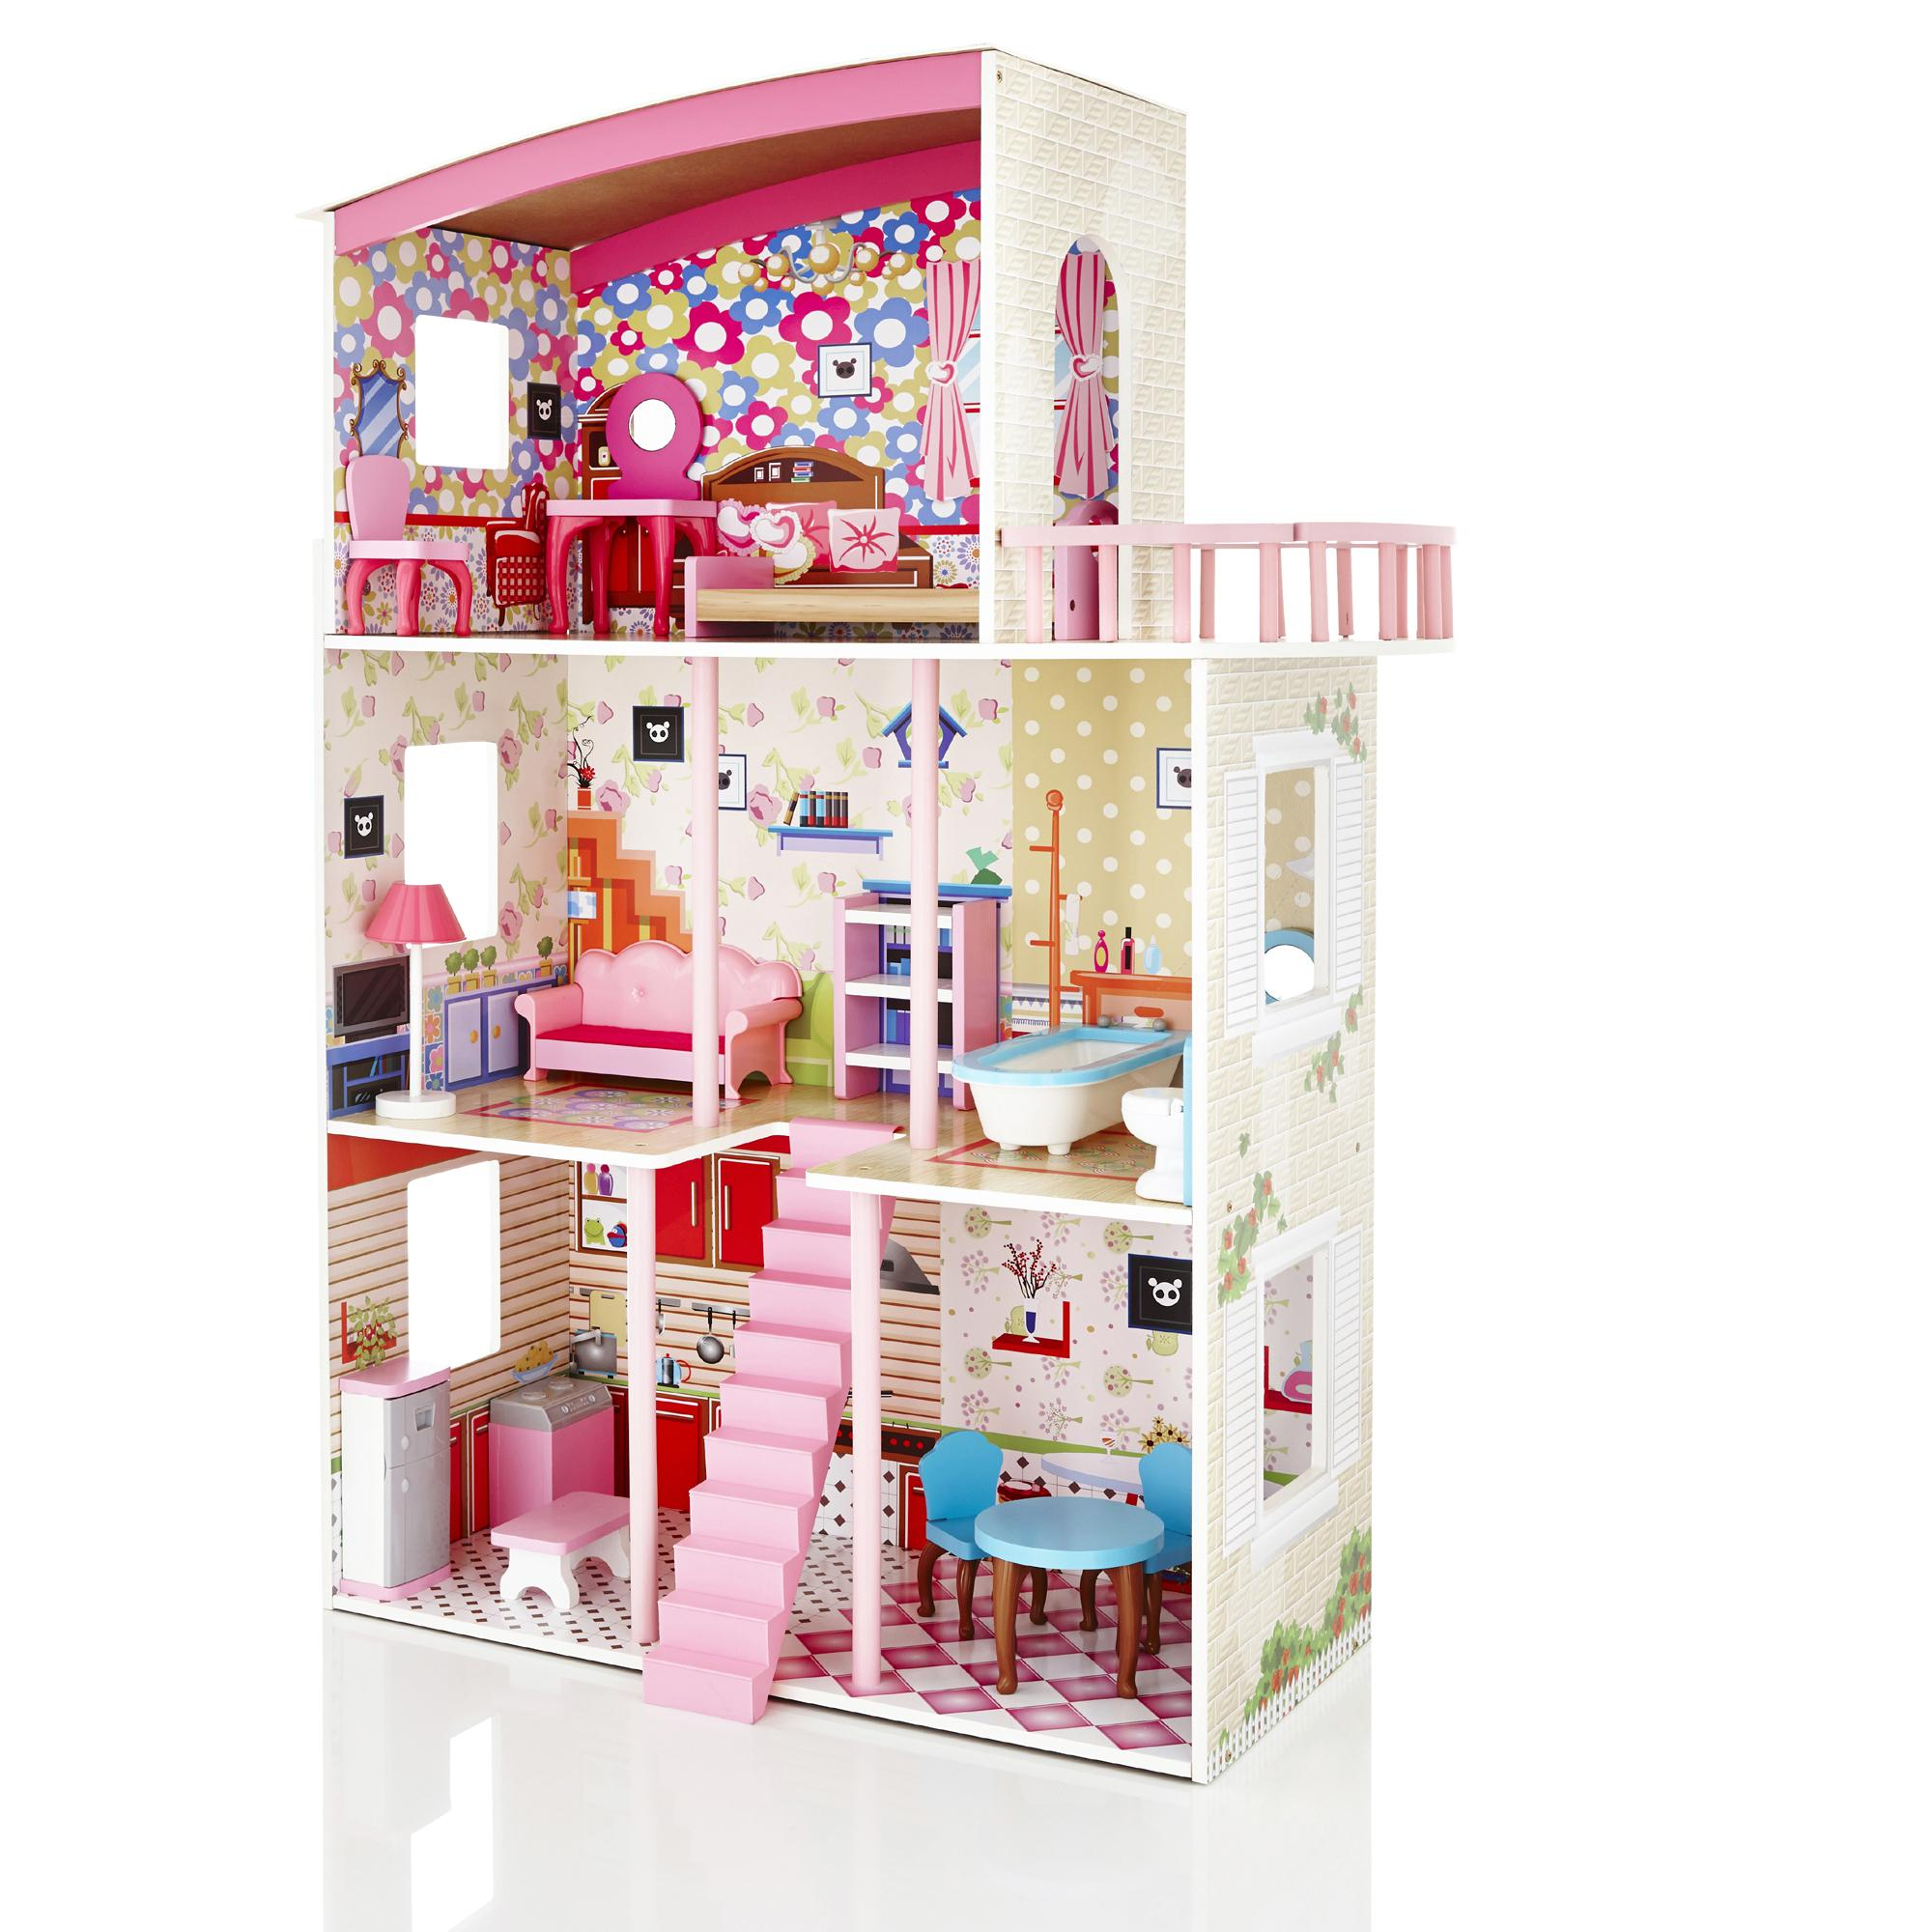 molly dolly large wooden dolls house dollhouse 15. Black Bedroom Furniture Sets. Home Design Ideas